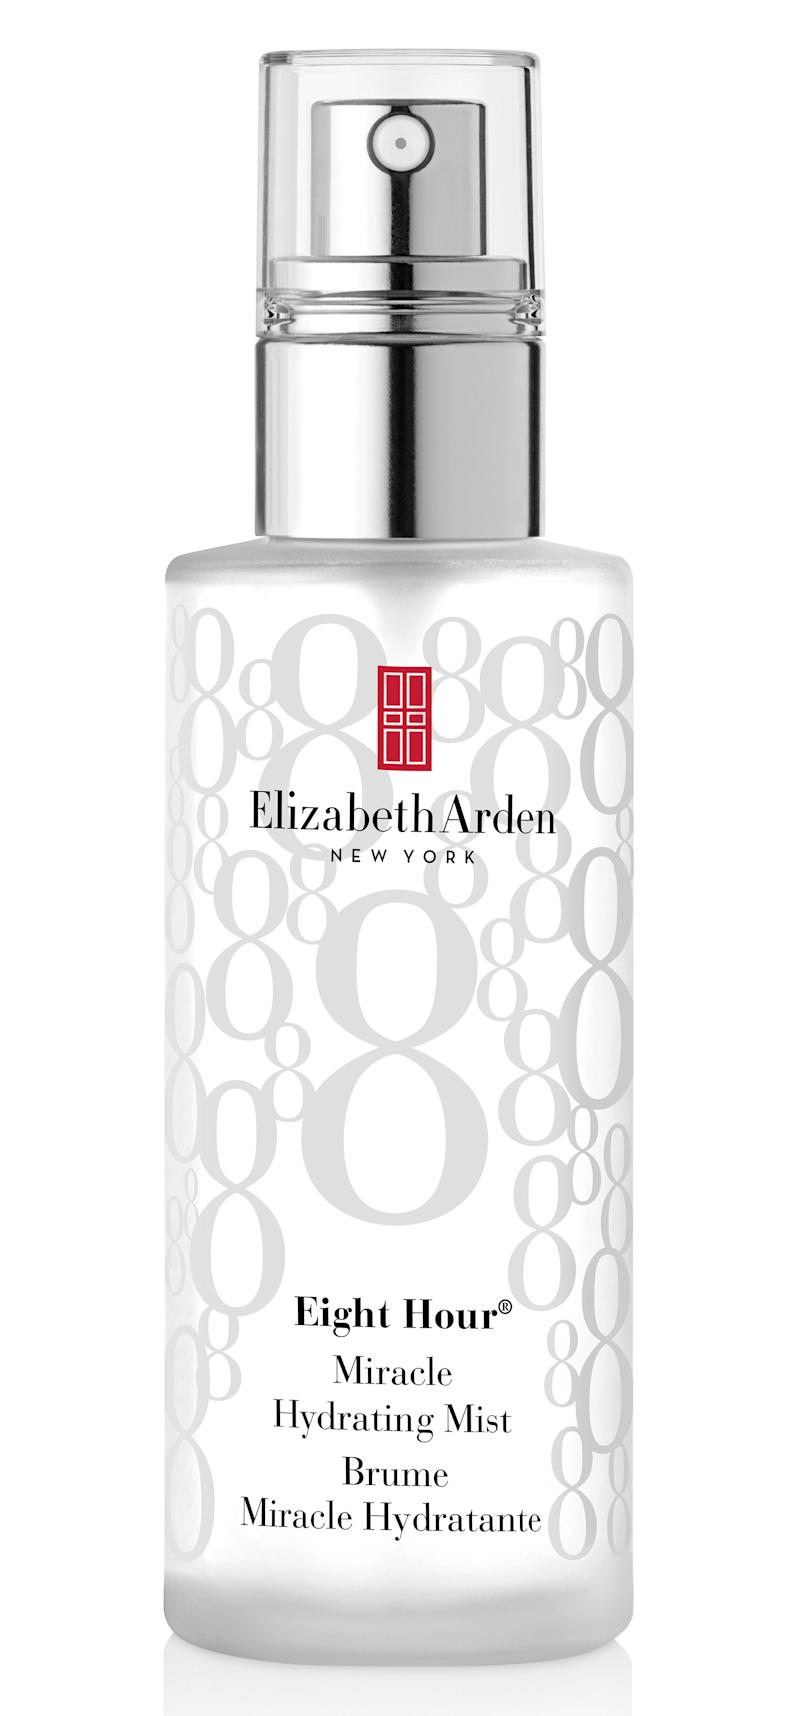 Elizabeth Arden Eight Hour Miracle Hydrating Mist.